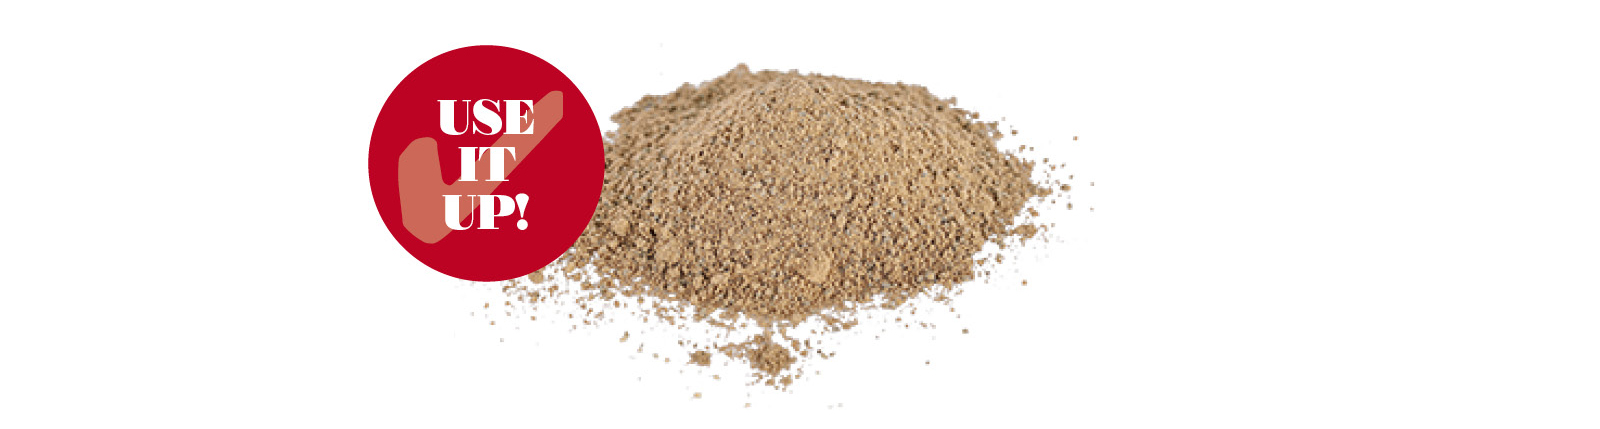 image shows ground nutmeg